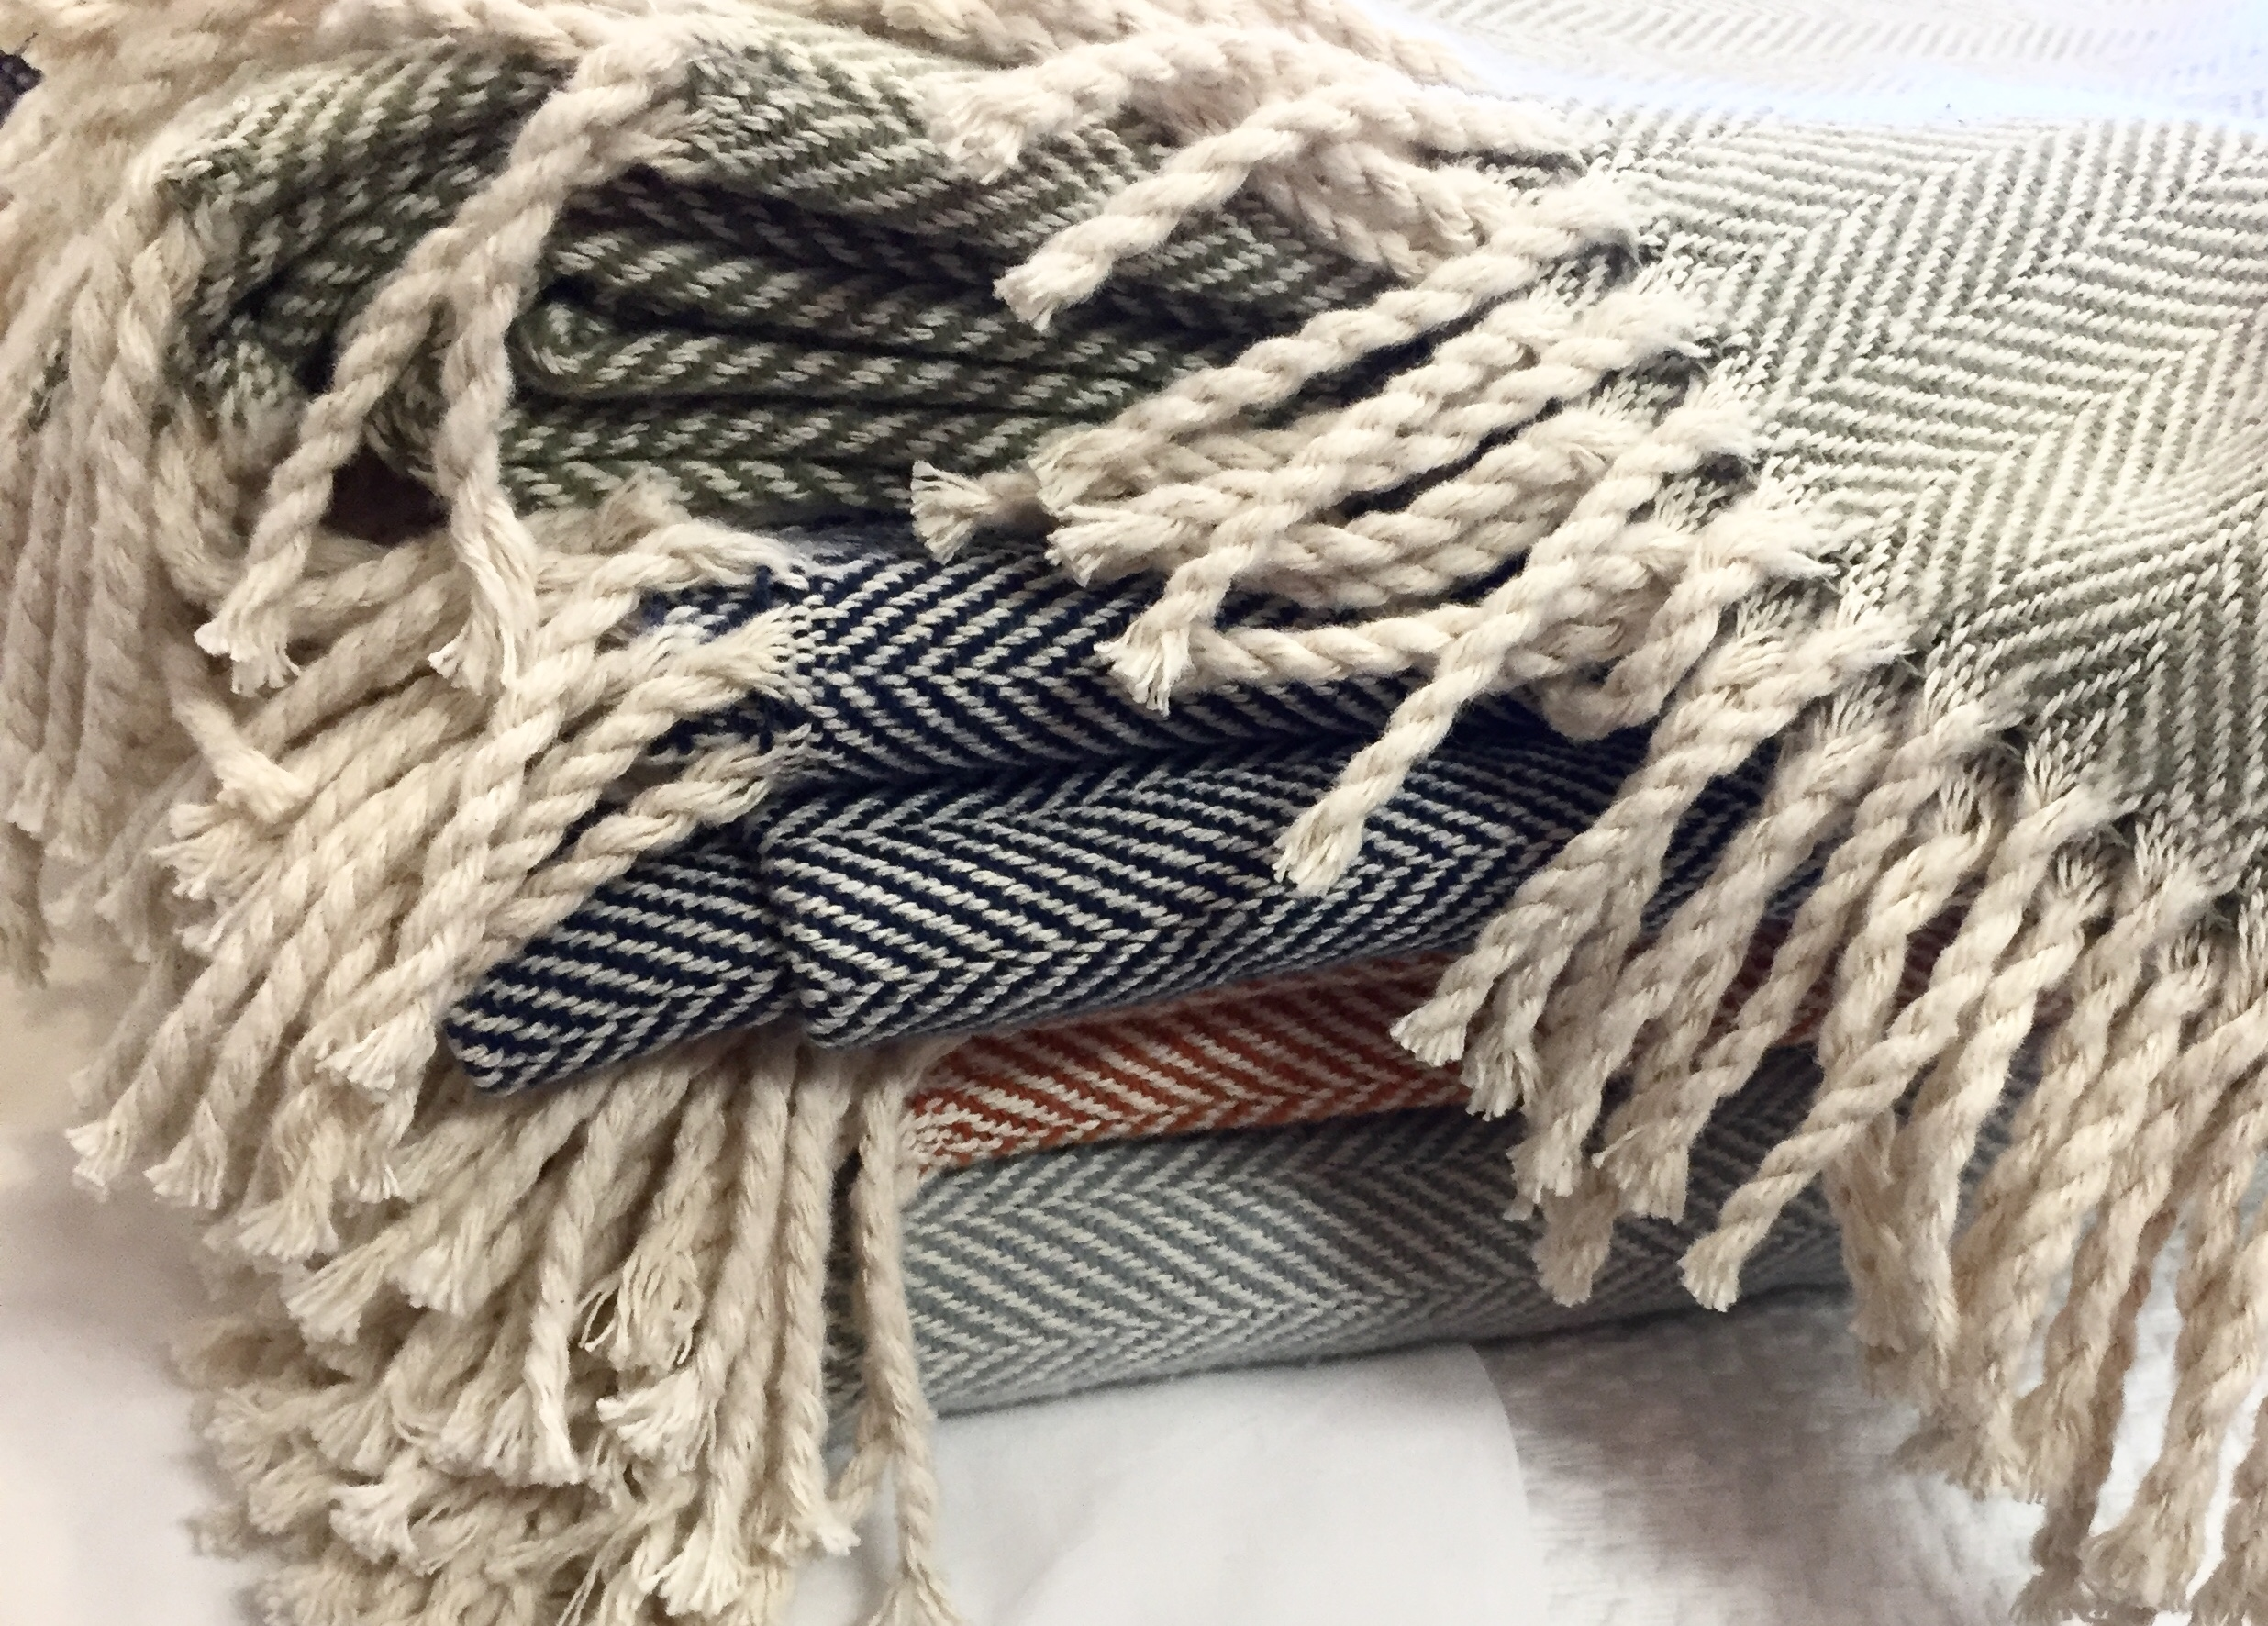 Your sofa won't be complete without a cozy throw.